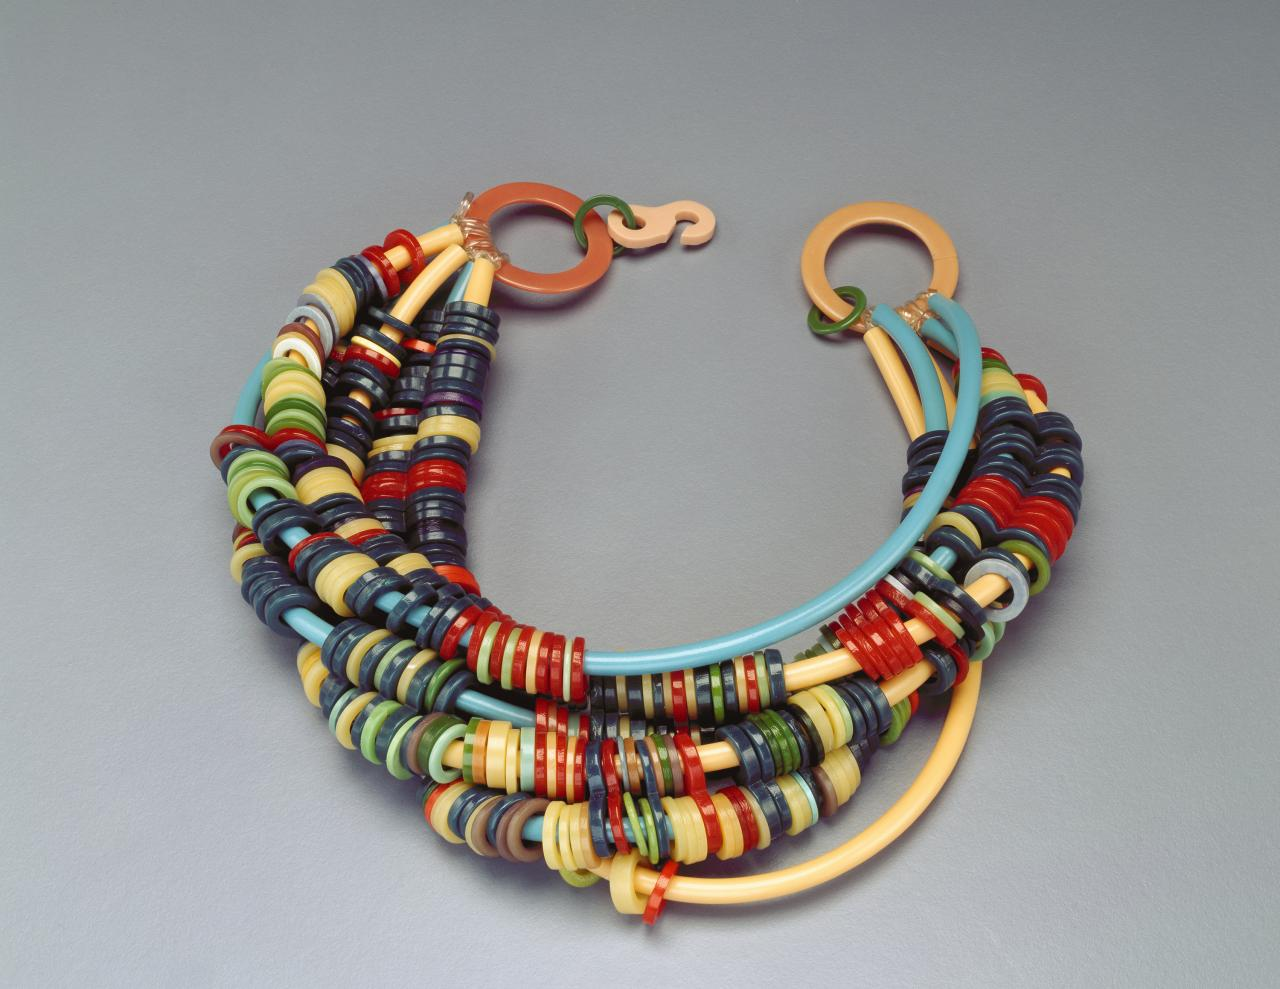 Ubangi necklace